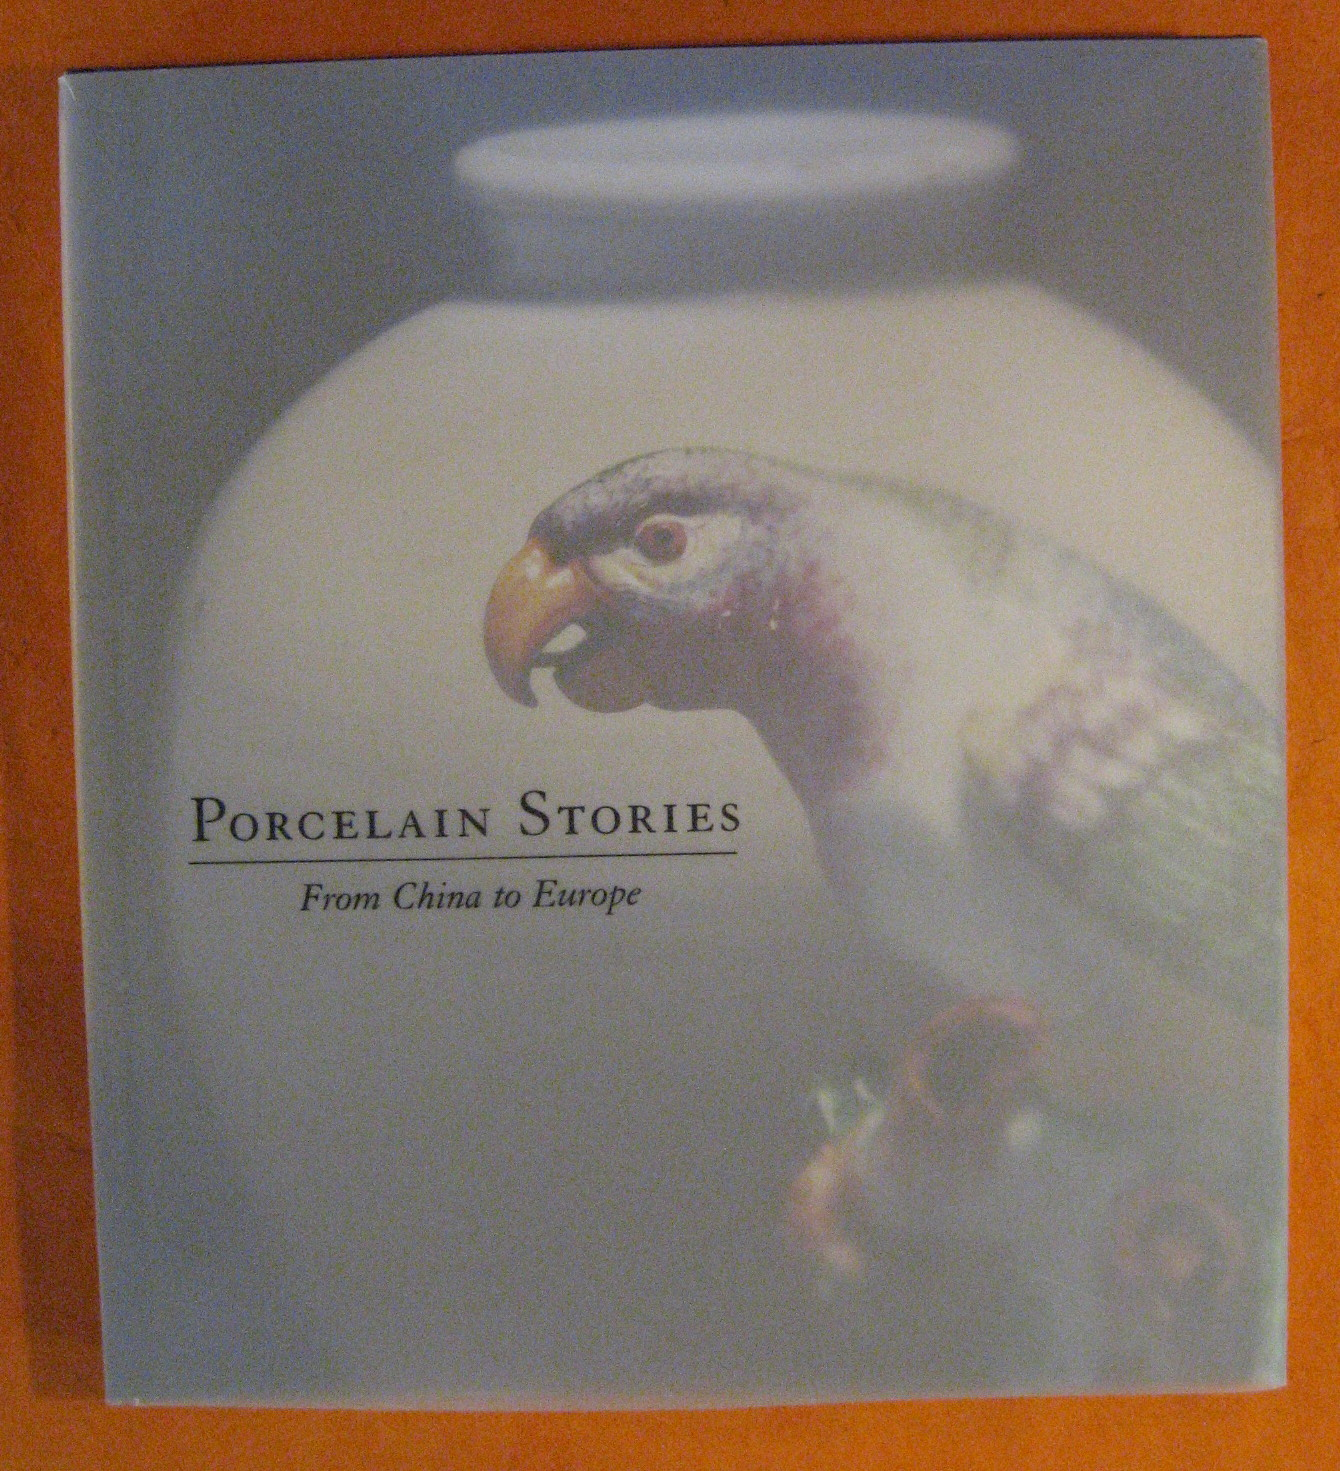 Porcelain Stories: From China to Europe, Emerson, Julie ; Jennifer Chen; Mimi Gardner Gates